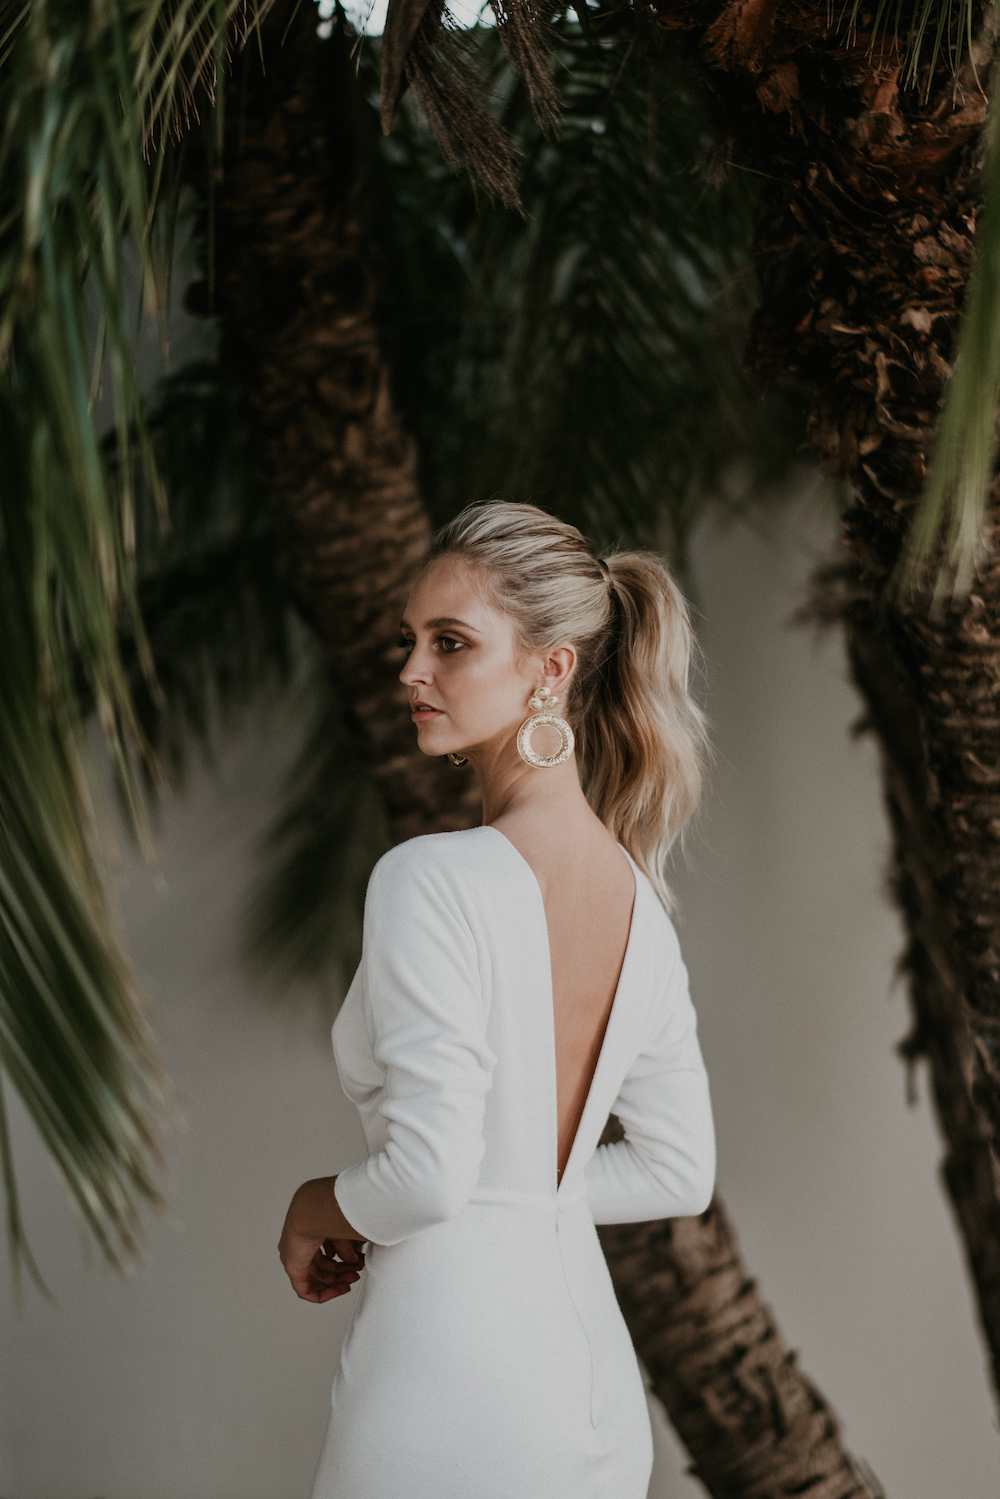 The Sophia bridal dress from Jane Hill Bridal | View on LOVE FIND CO.